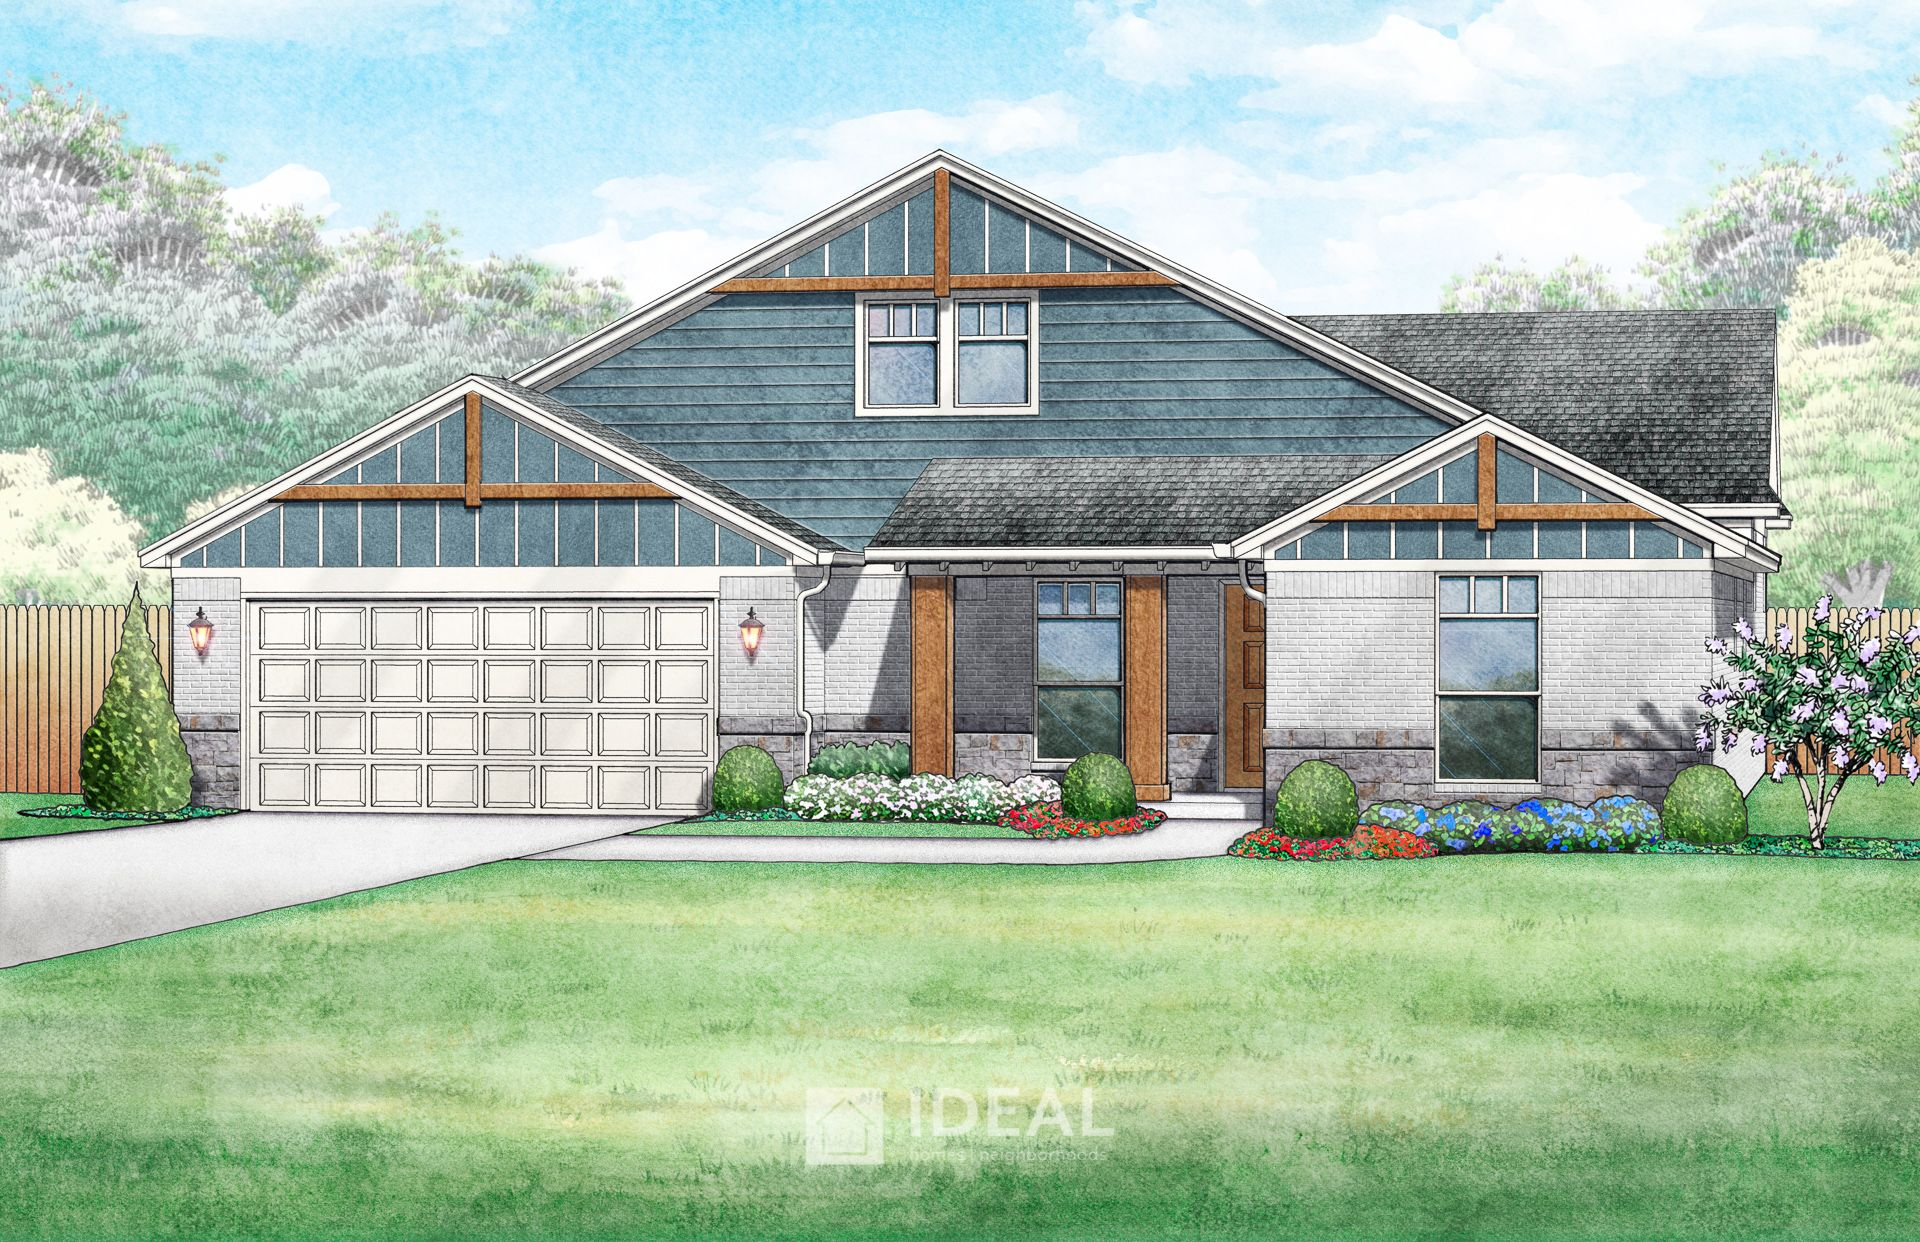 Lawrence Mountain Cottage - Elevation A